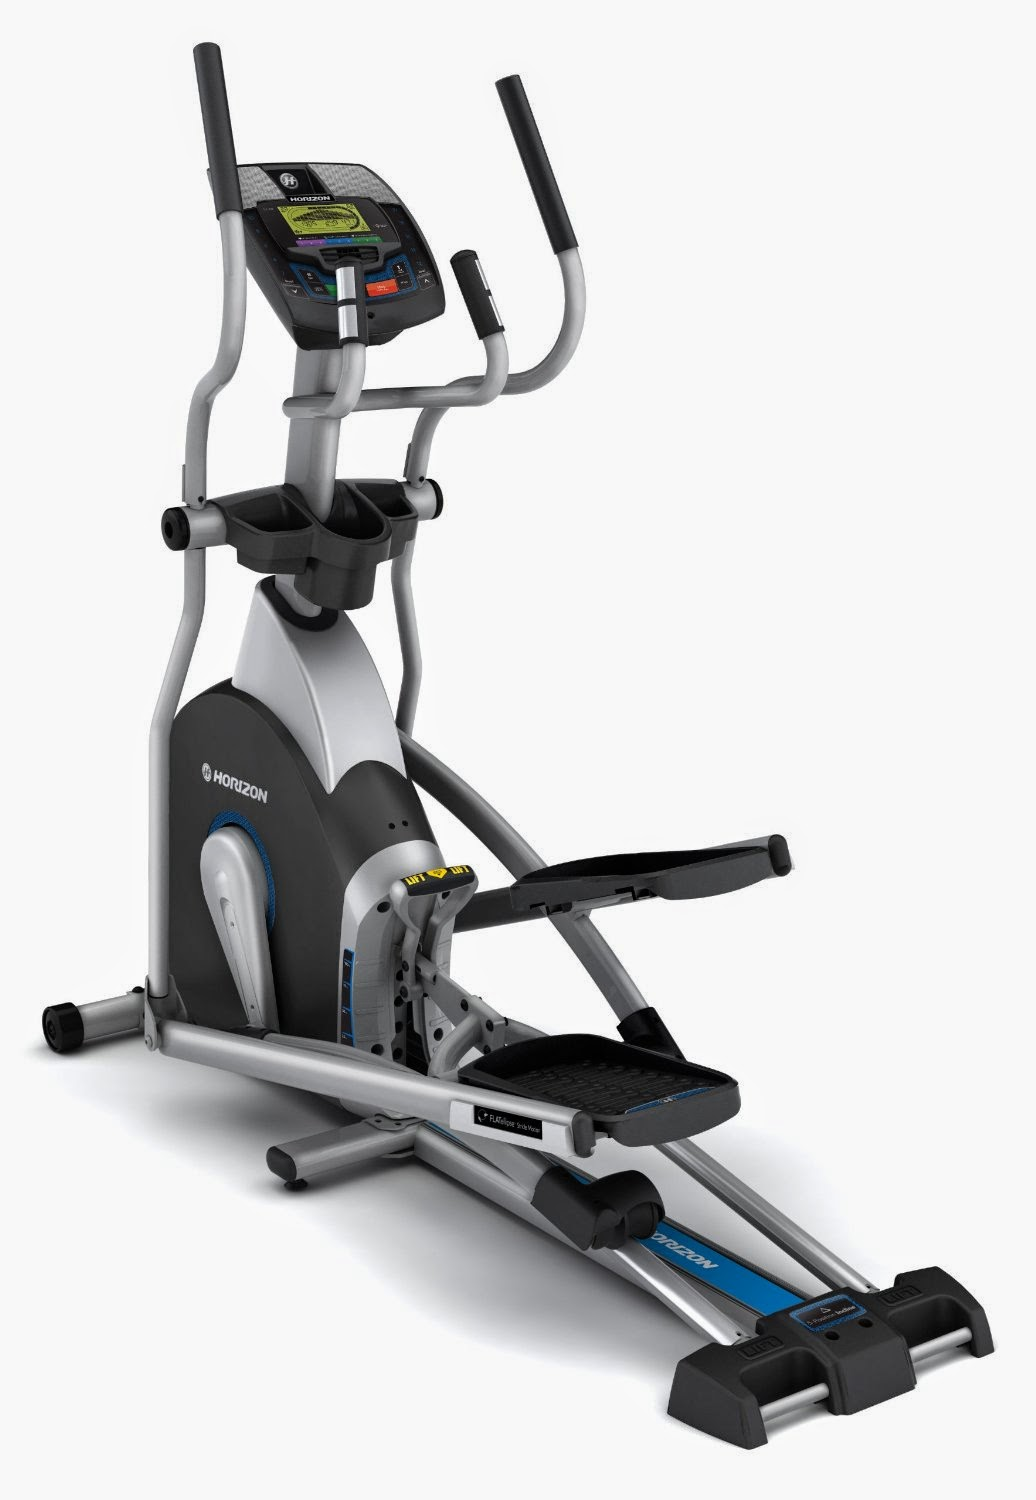 Horizon Fitness EX-69-2 Elliptical Trainer, picture, review features & specifications